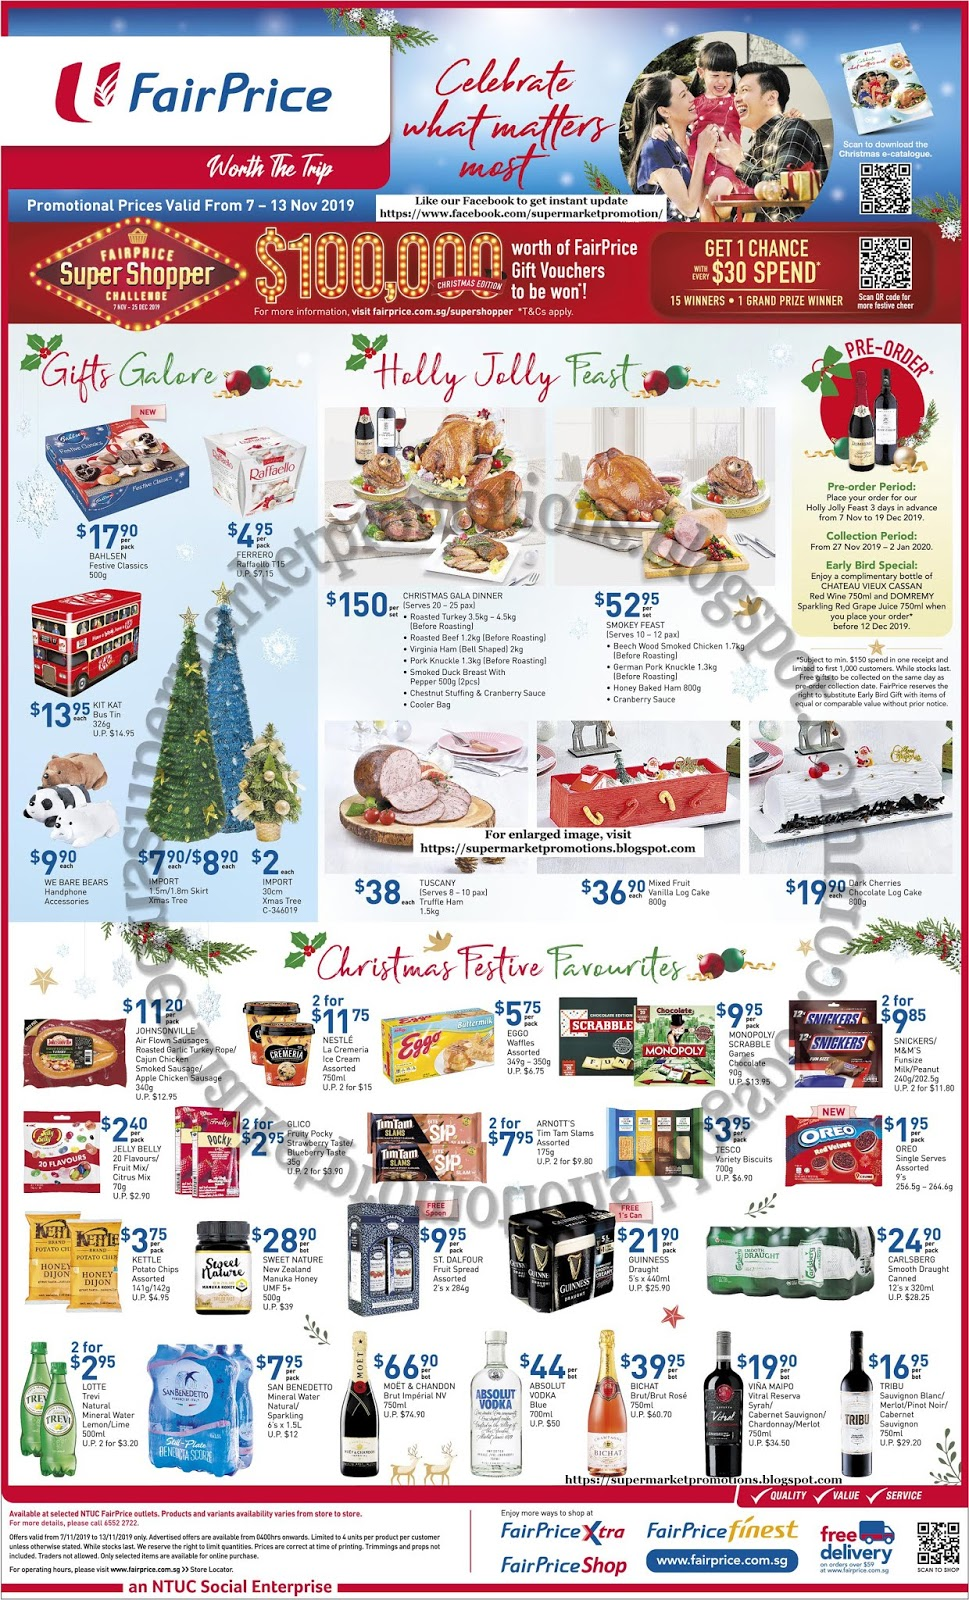 Fairprice Christmas Catalogue 2021 Ntuc Fairprice Christmas Promotion 07 13 November 2019 Supermarket Promotions